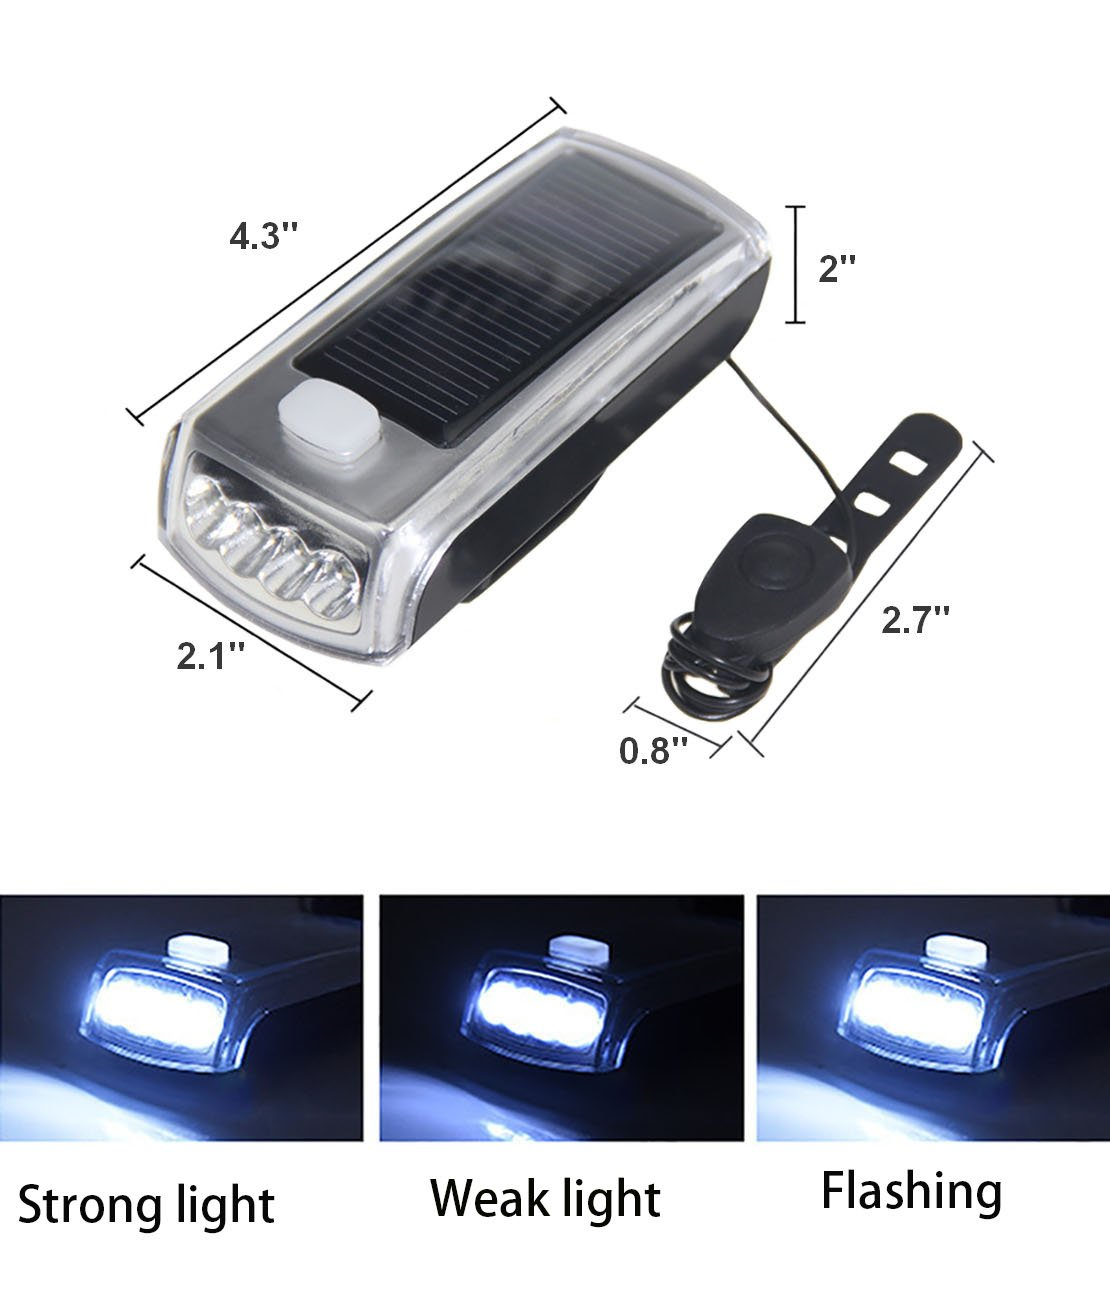 Ultra Bright Bicycle Lights Set - Front Headlights & Horn & Back Taillights, Two(Solar and USB)-in-One Rechargeable LED Bike Front Lights, Waterproof & Safety Road, 1200mAH/1200 Lumens Head Lights. by Juxical (Image #3)